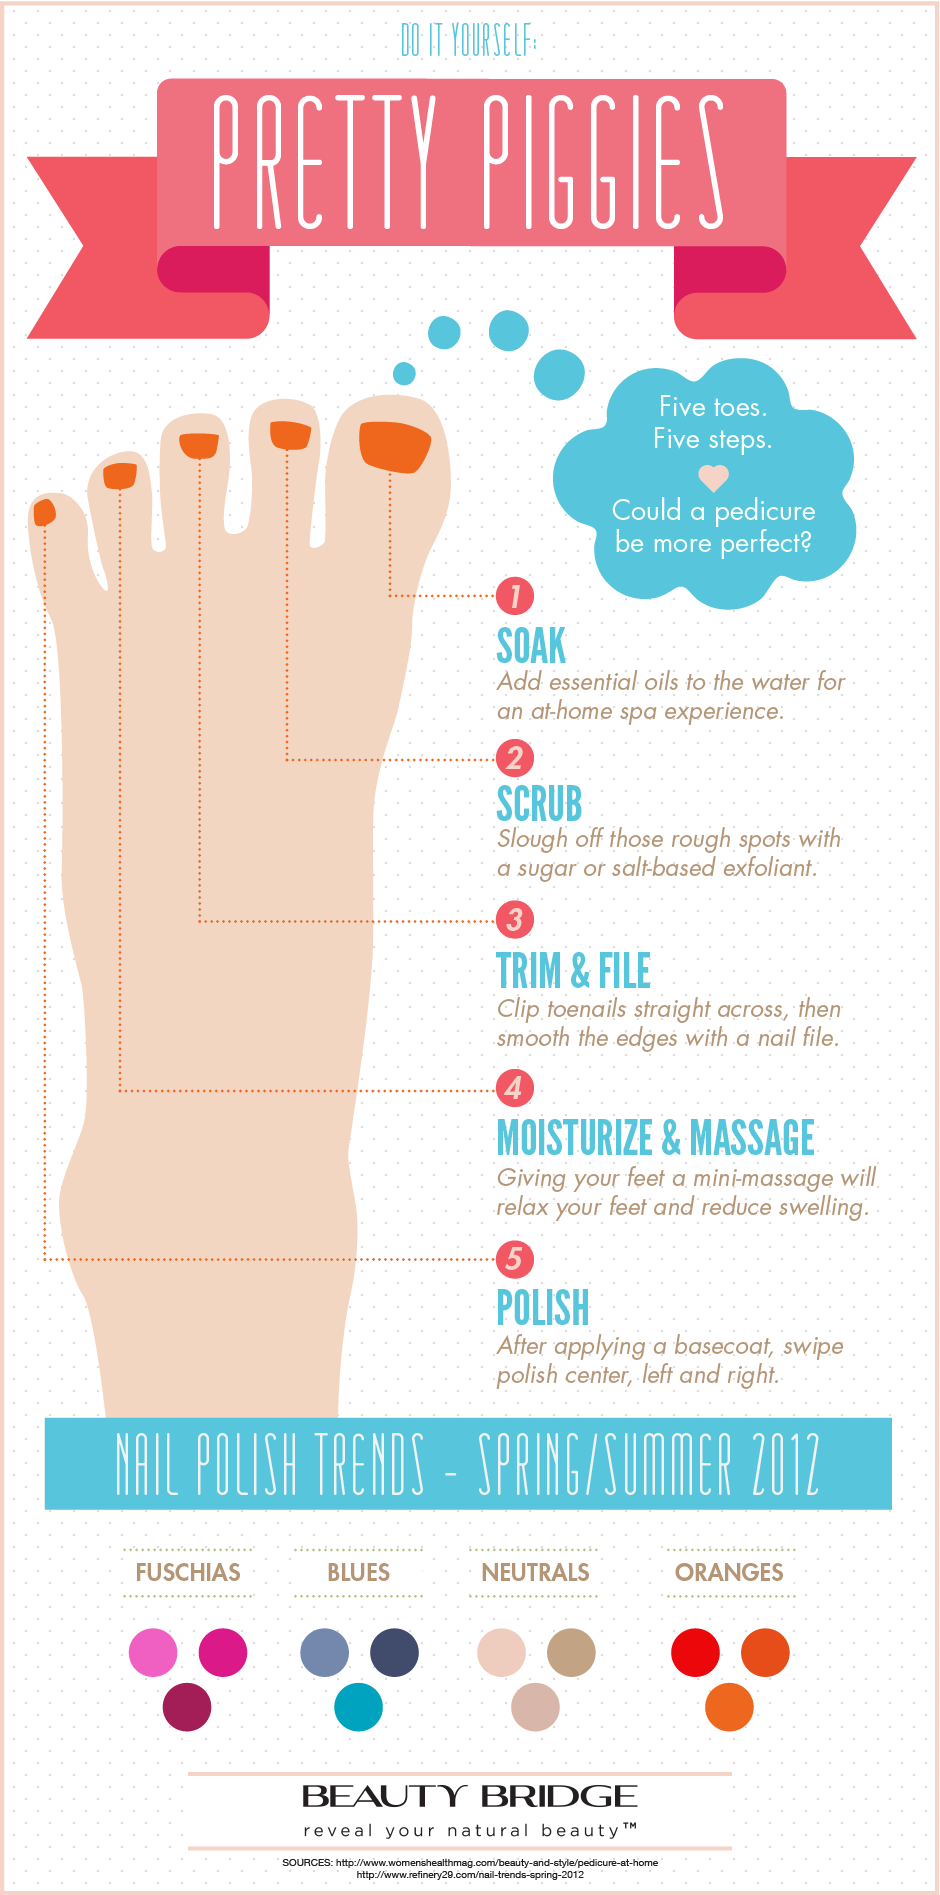 Prefect Pedicure and Nail Polish Trends - Spring/Summer 2012